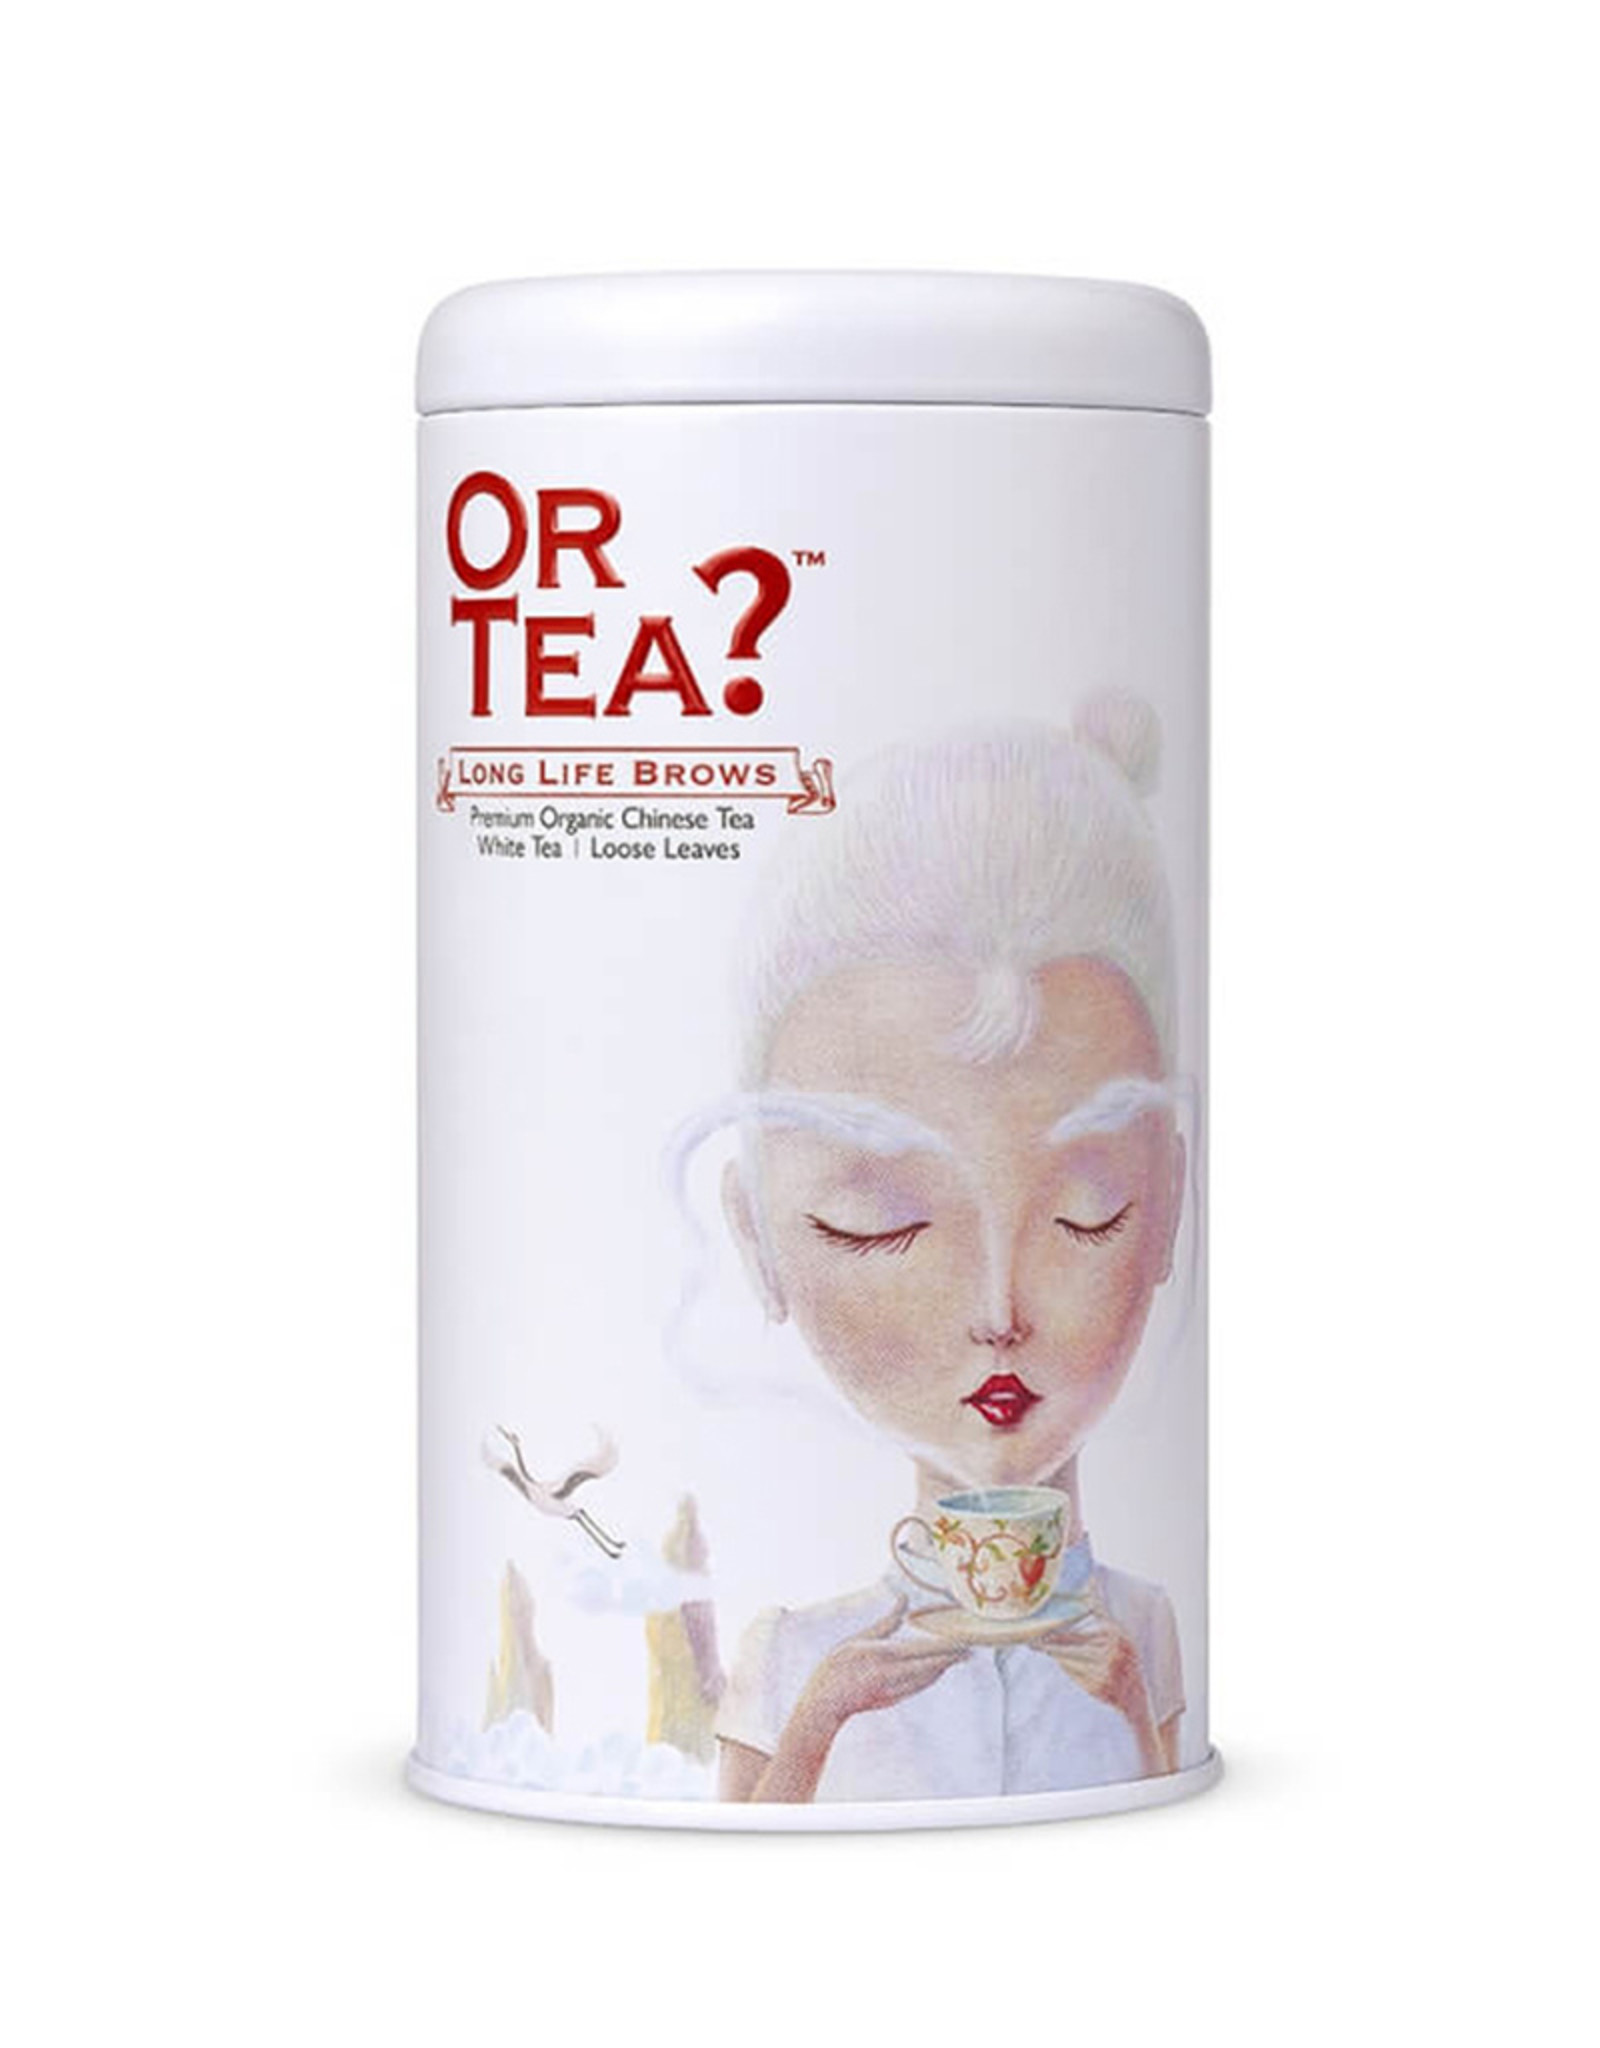 Or Tea? Long Life Brows BIO - Silver Needle witte thee